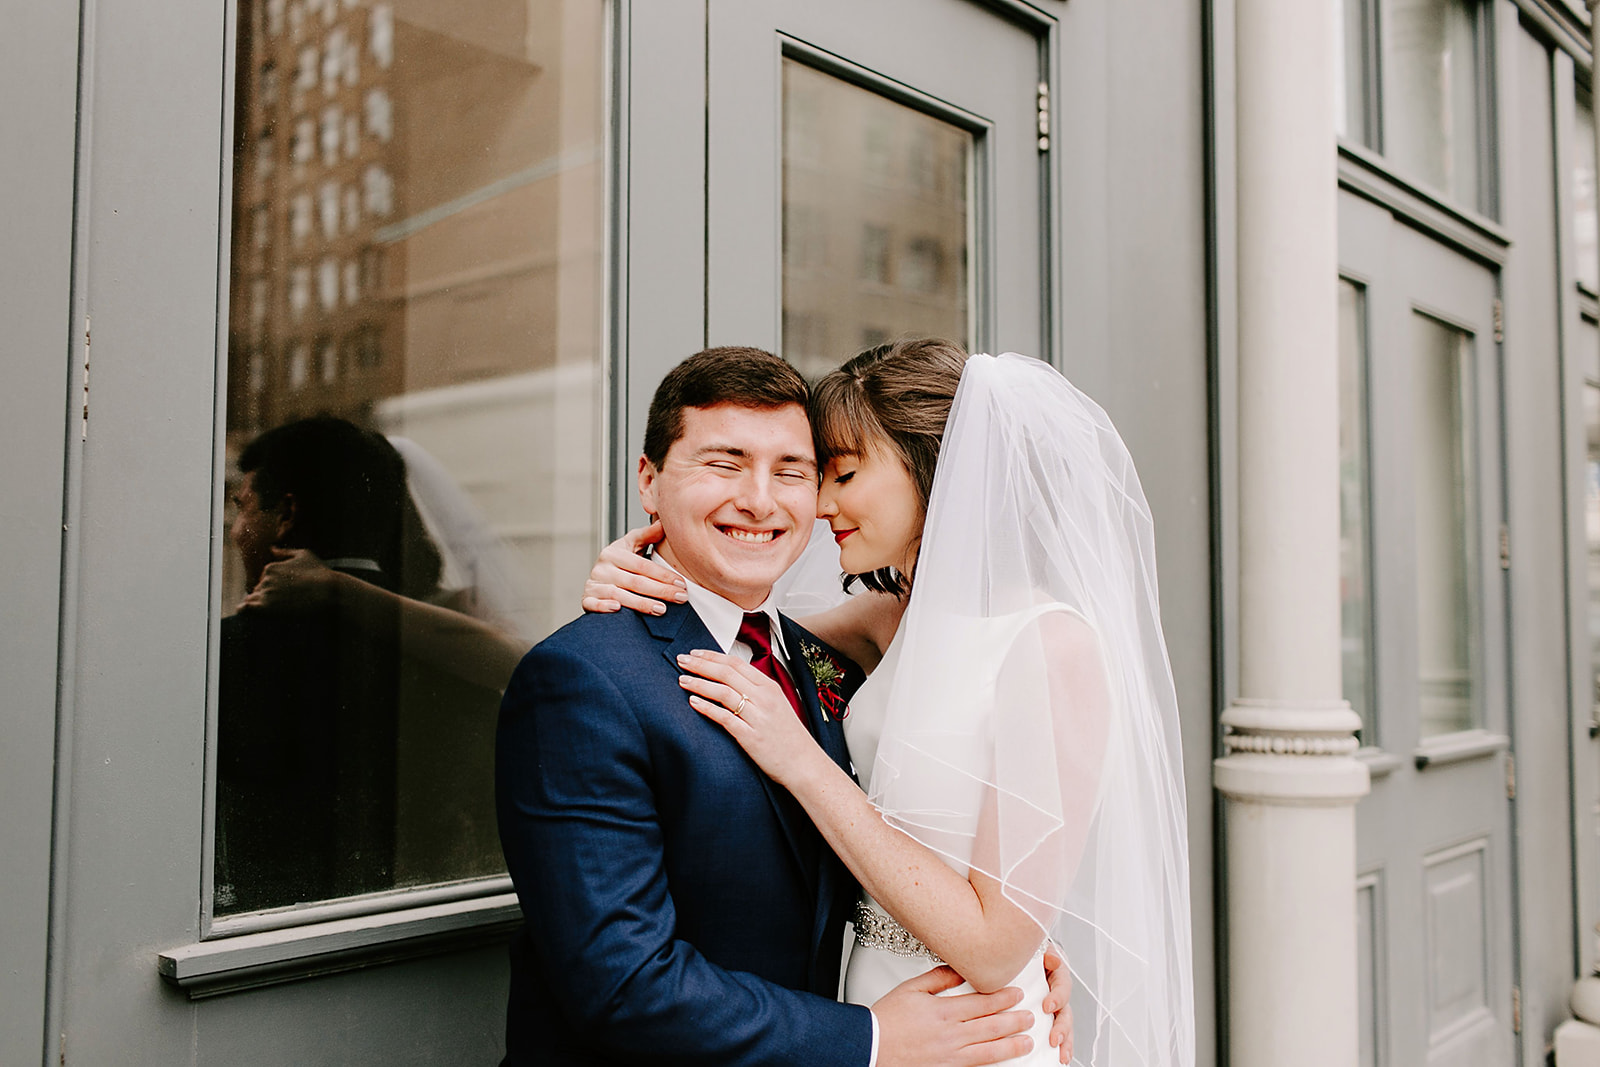 Emily and Davis_ Wedding at Vision Loft Indy in Indianapolis Indiana by Emily Elyse Wehner Photogrpahy LLC-151.jpg